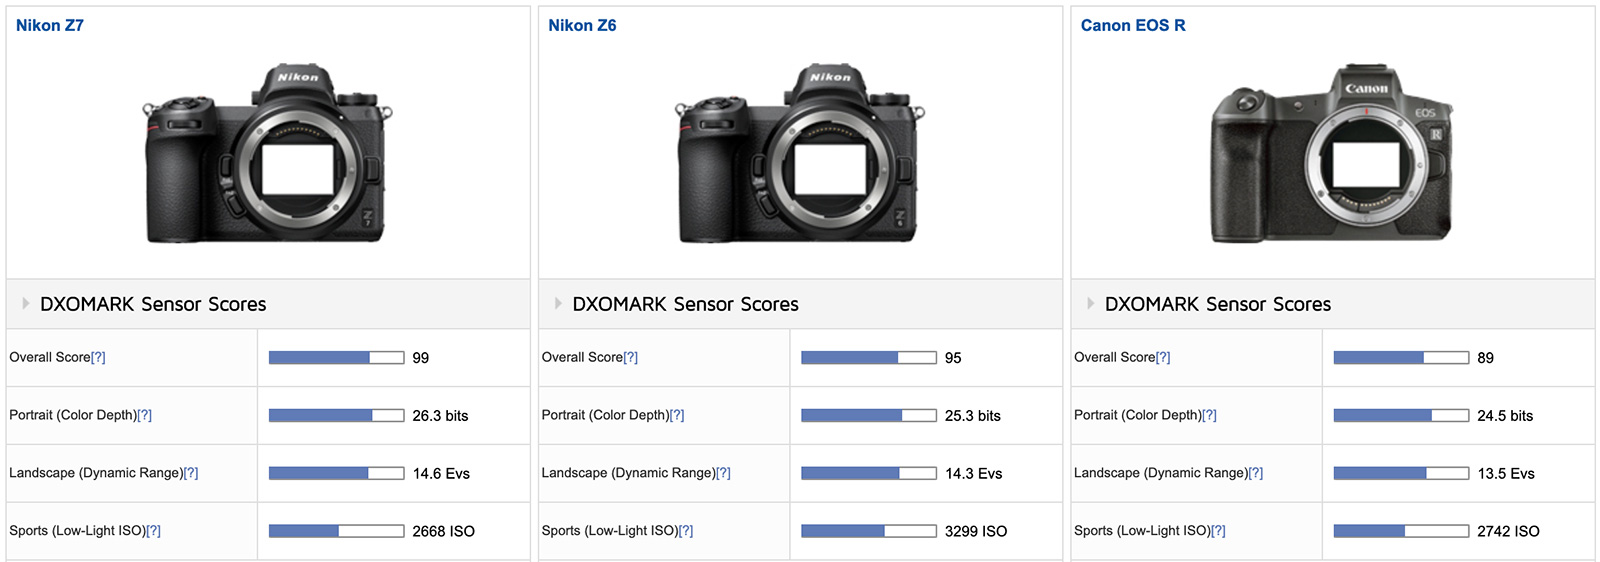 Canon EOS R camera tested at DxOMark (compared with Nikon Z6